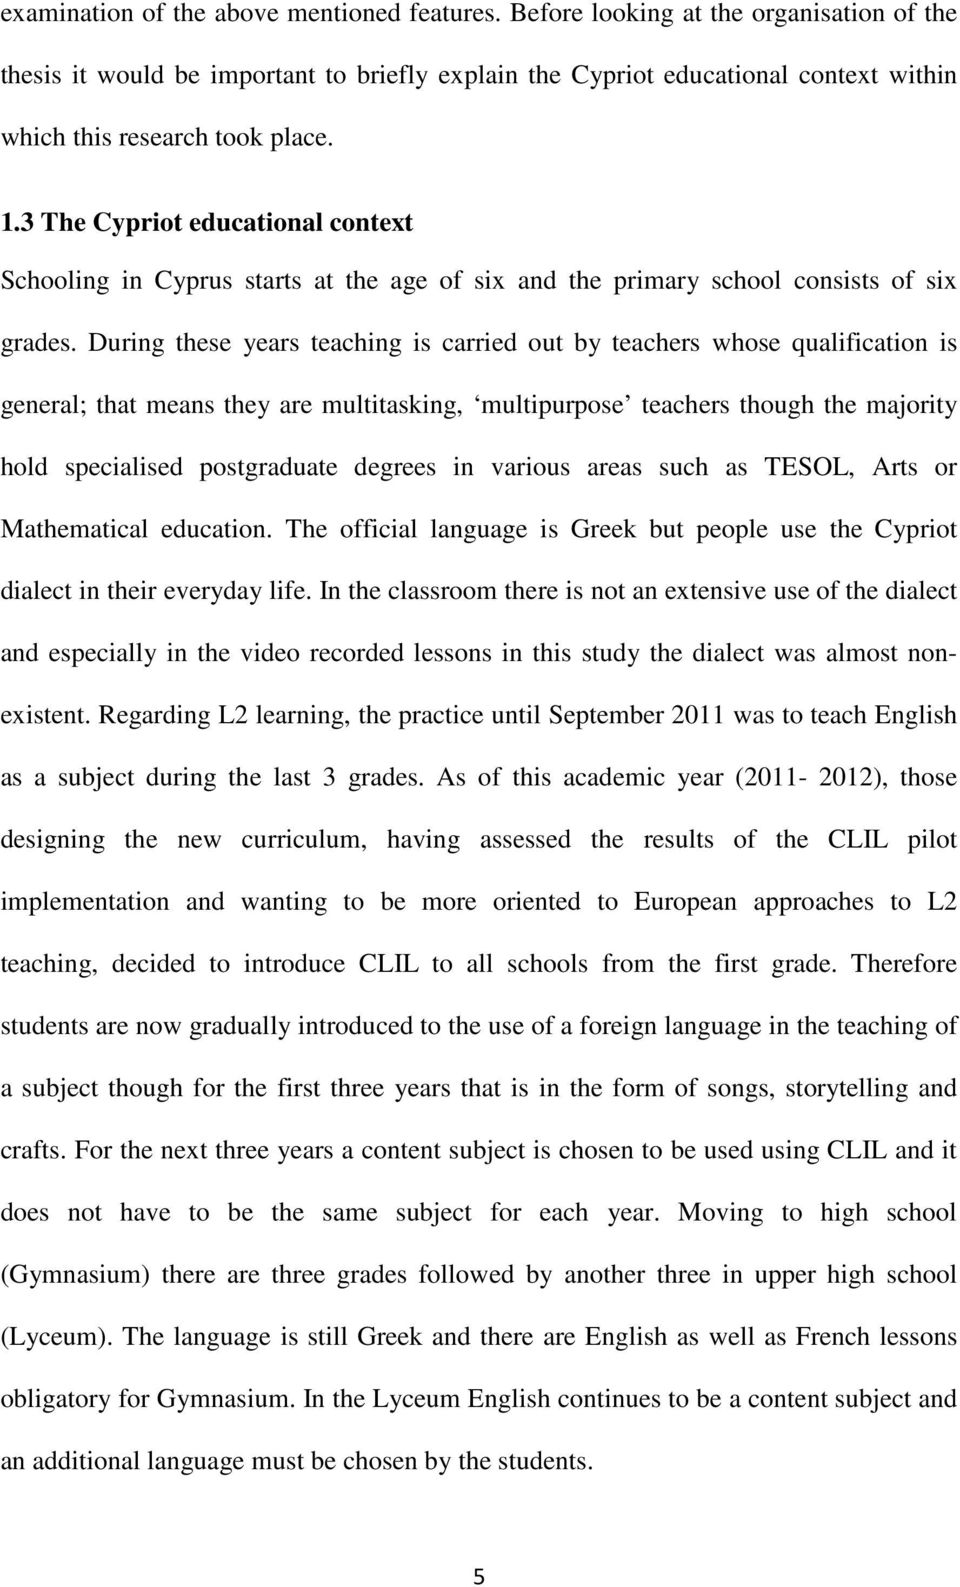 3 The Cypriot educational context Schooling in Cyprus starts at the age of six and the primary school consists of six grades.